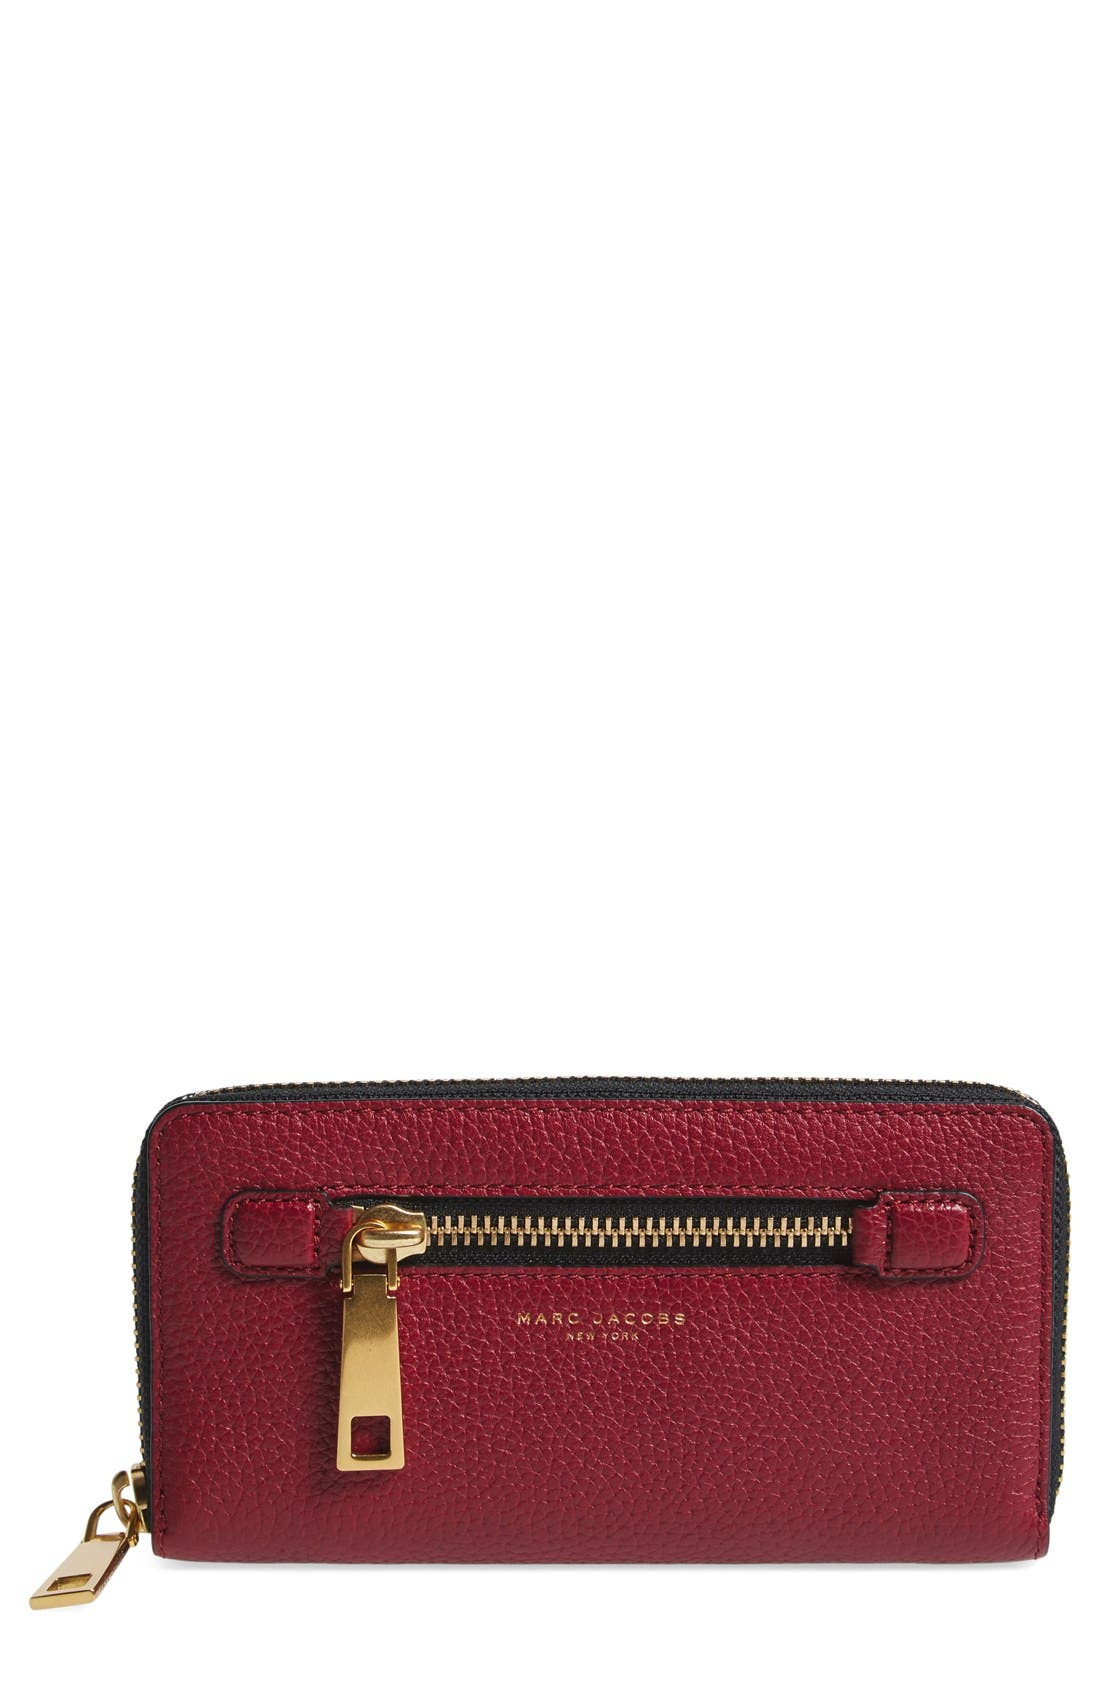 'Gotham' Leather Continental Wallet,                         Main,                         color, Merlot